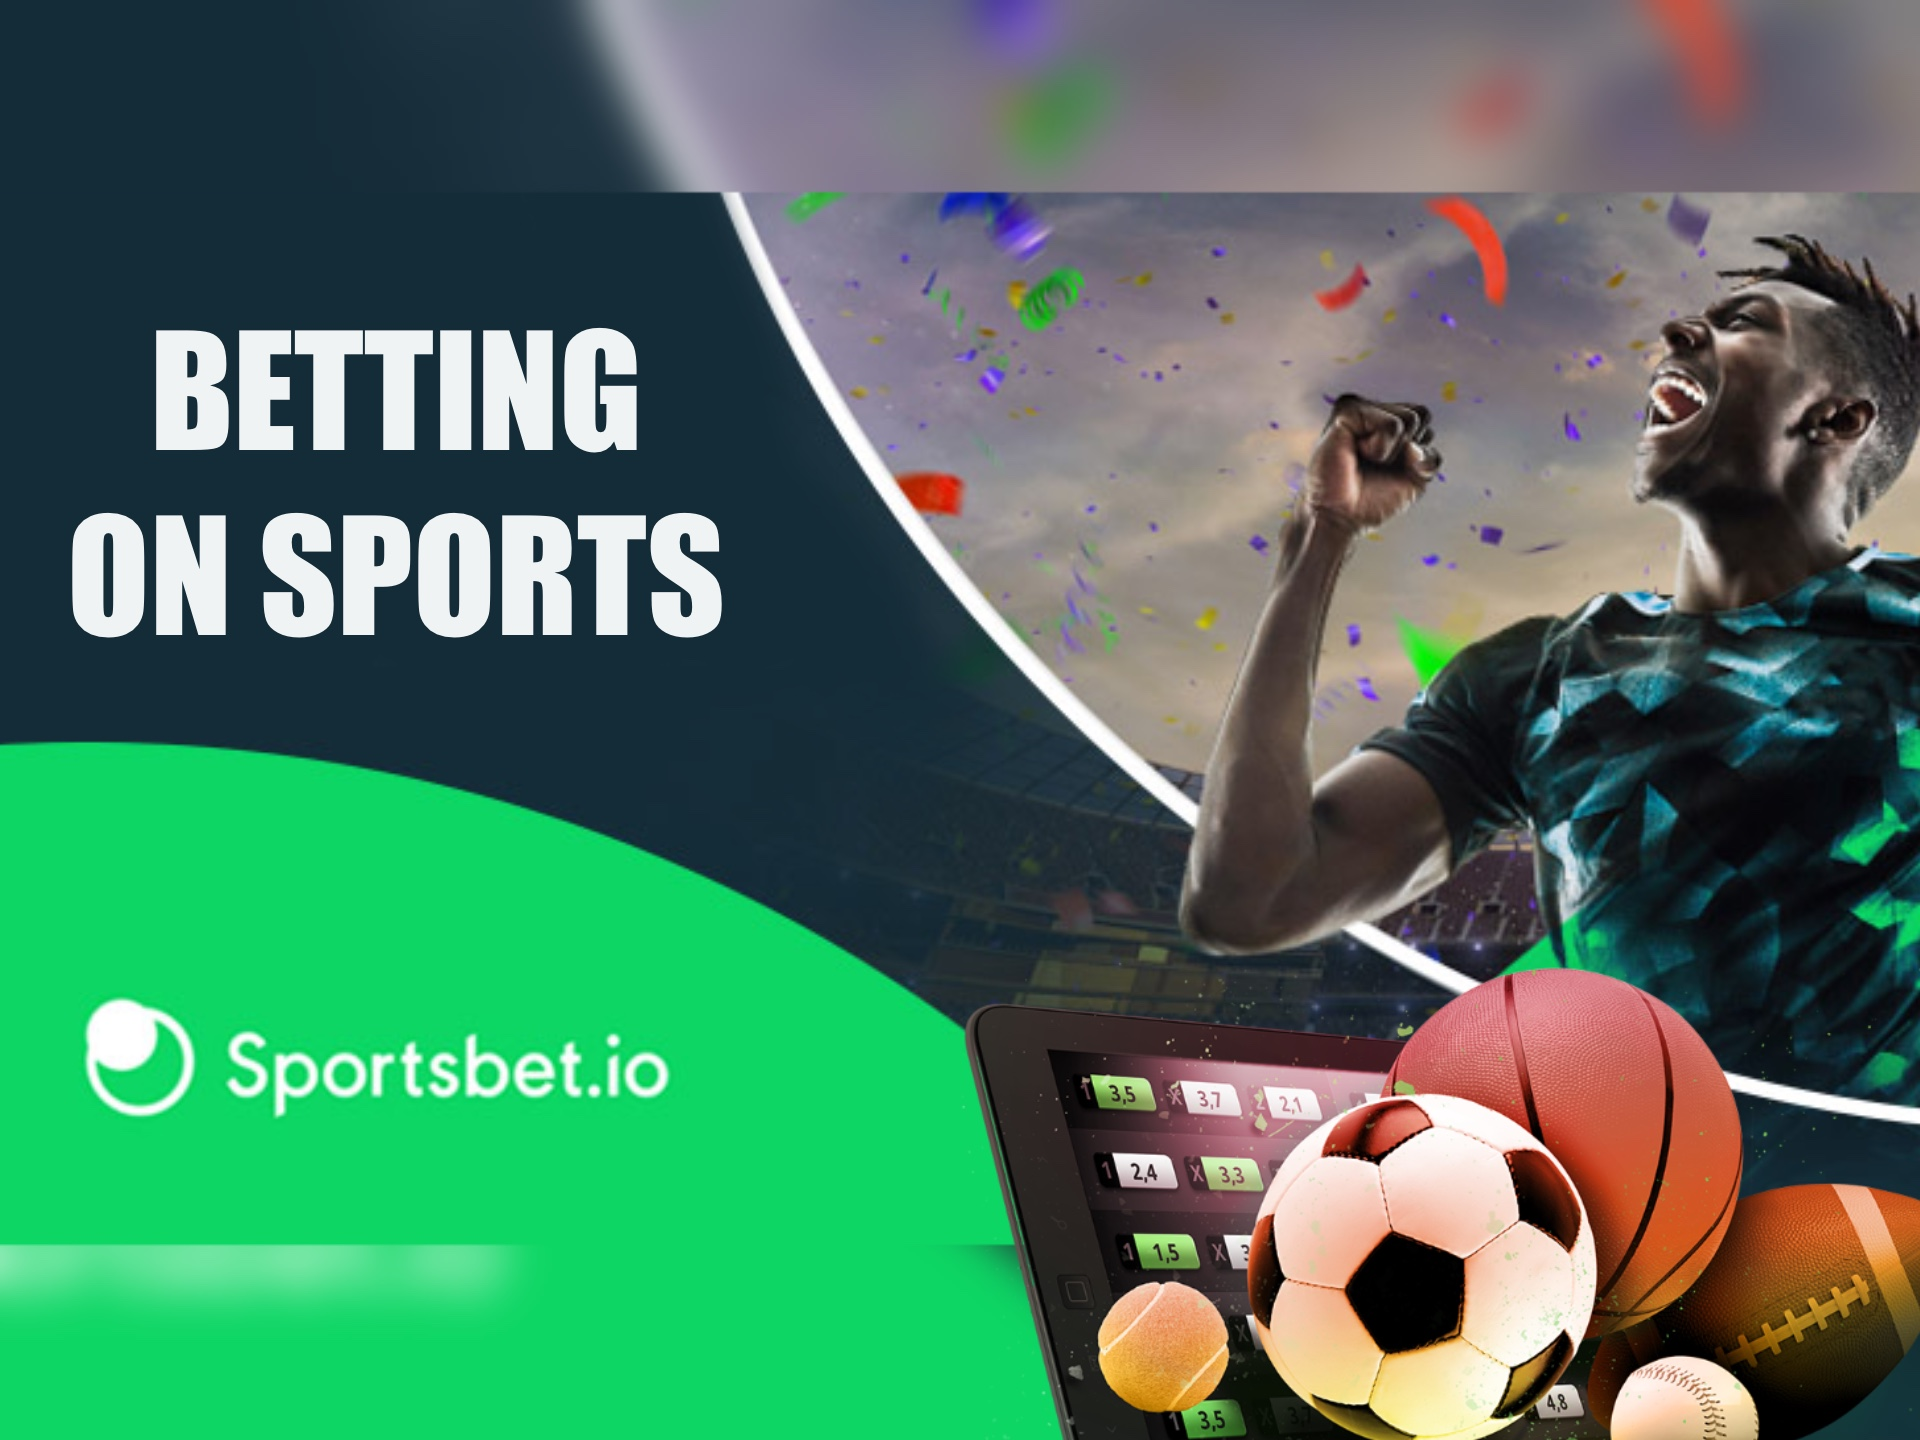 Choose your favorite sport and place bets via the Sportsbet app.